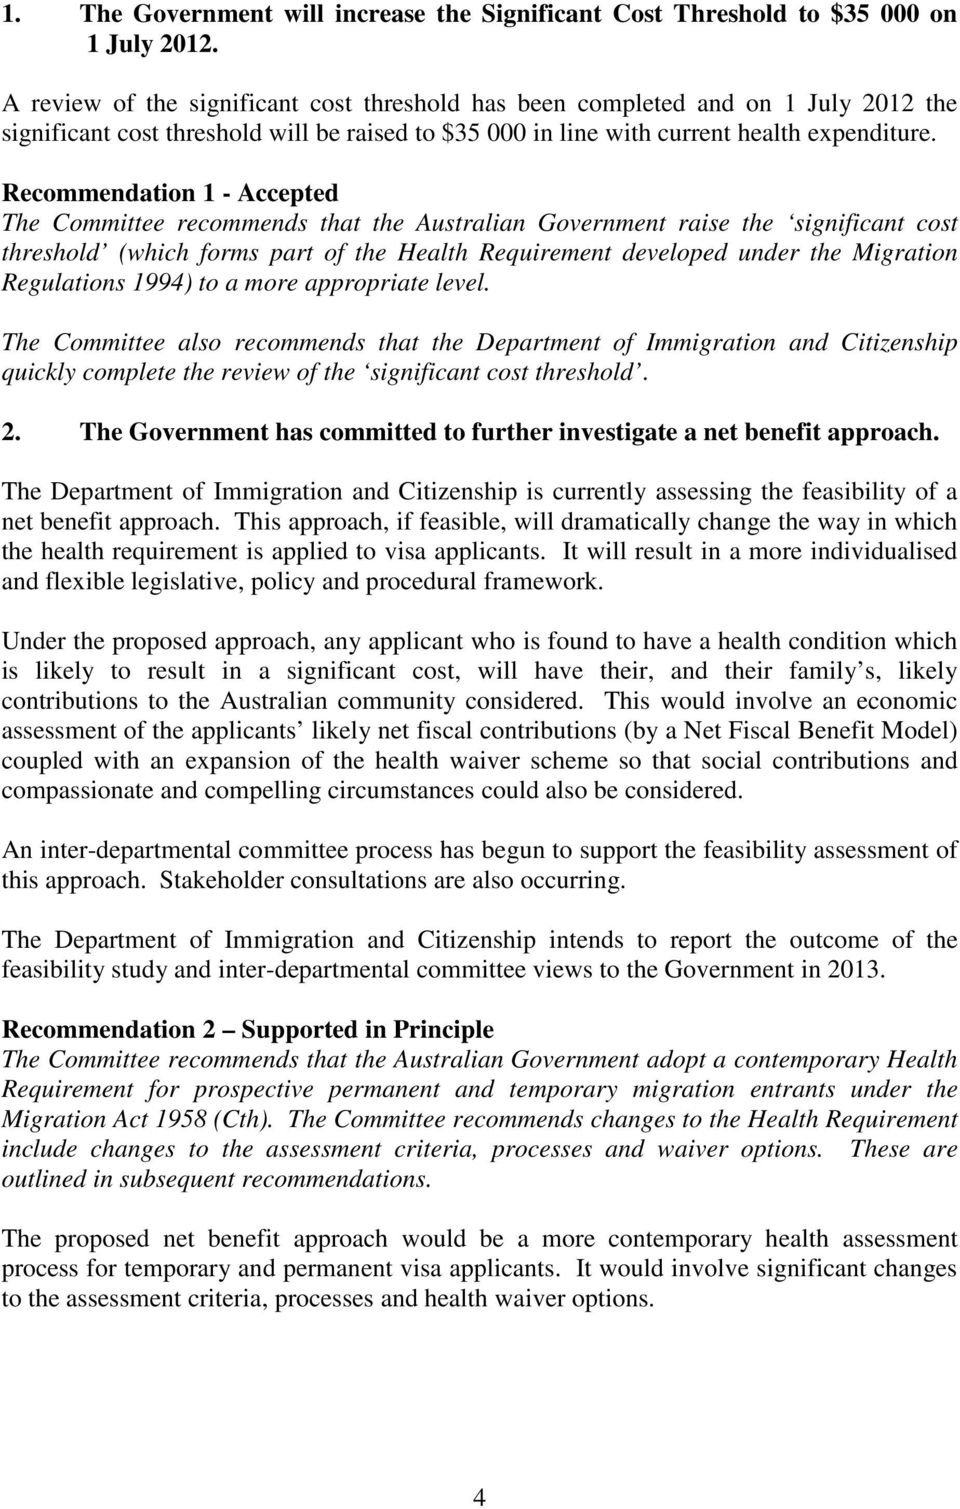 Recommendation 1 - Accepted The Committee recommends that the Australian Government raise the significant cost threshold (which forms part of the Health Requirement developed under the Migration